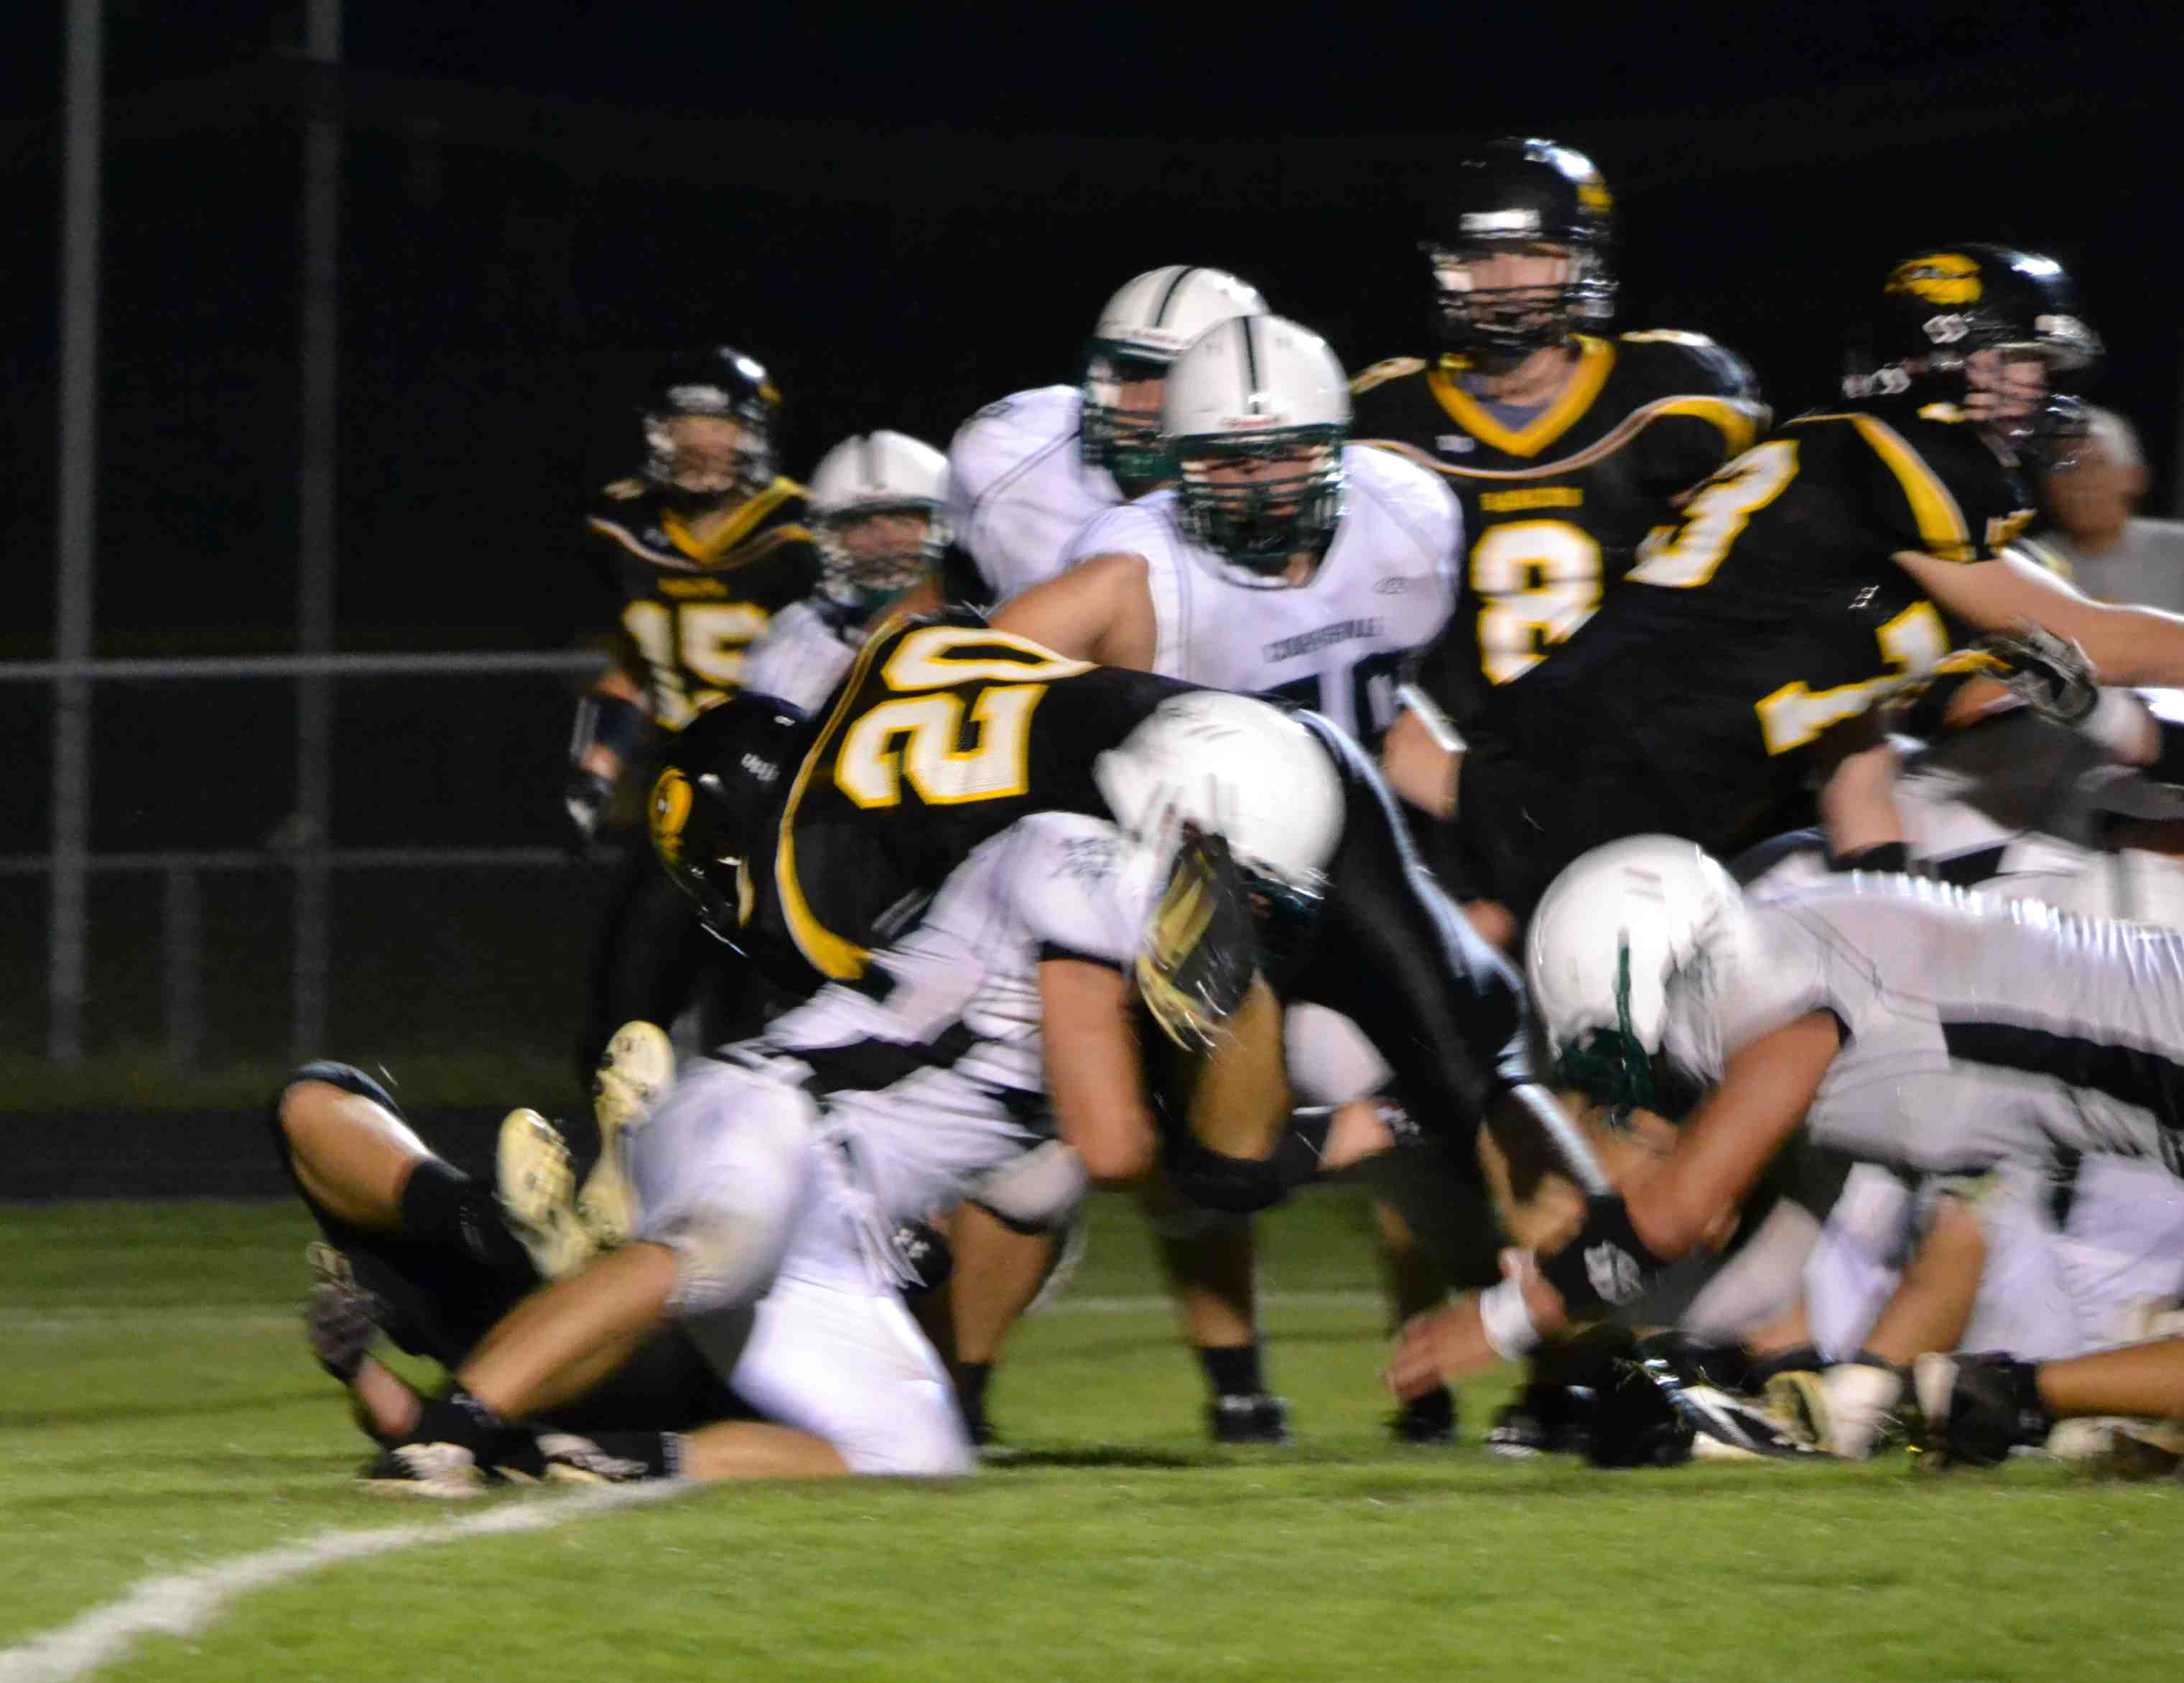 Senior running back Tommy Schreur follows his line and with second effort gets into the endzone.